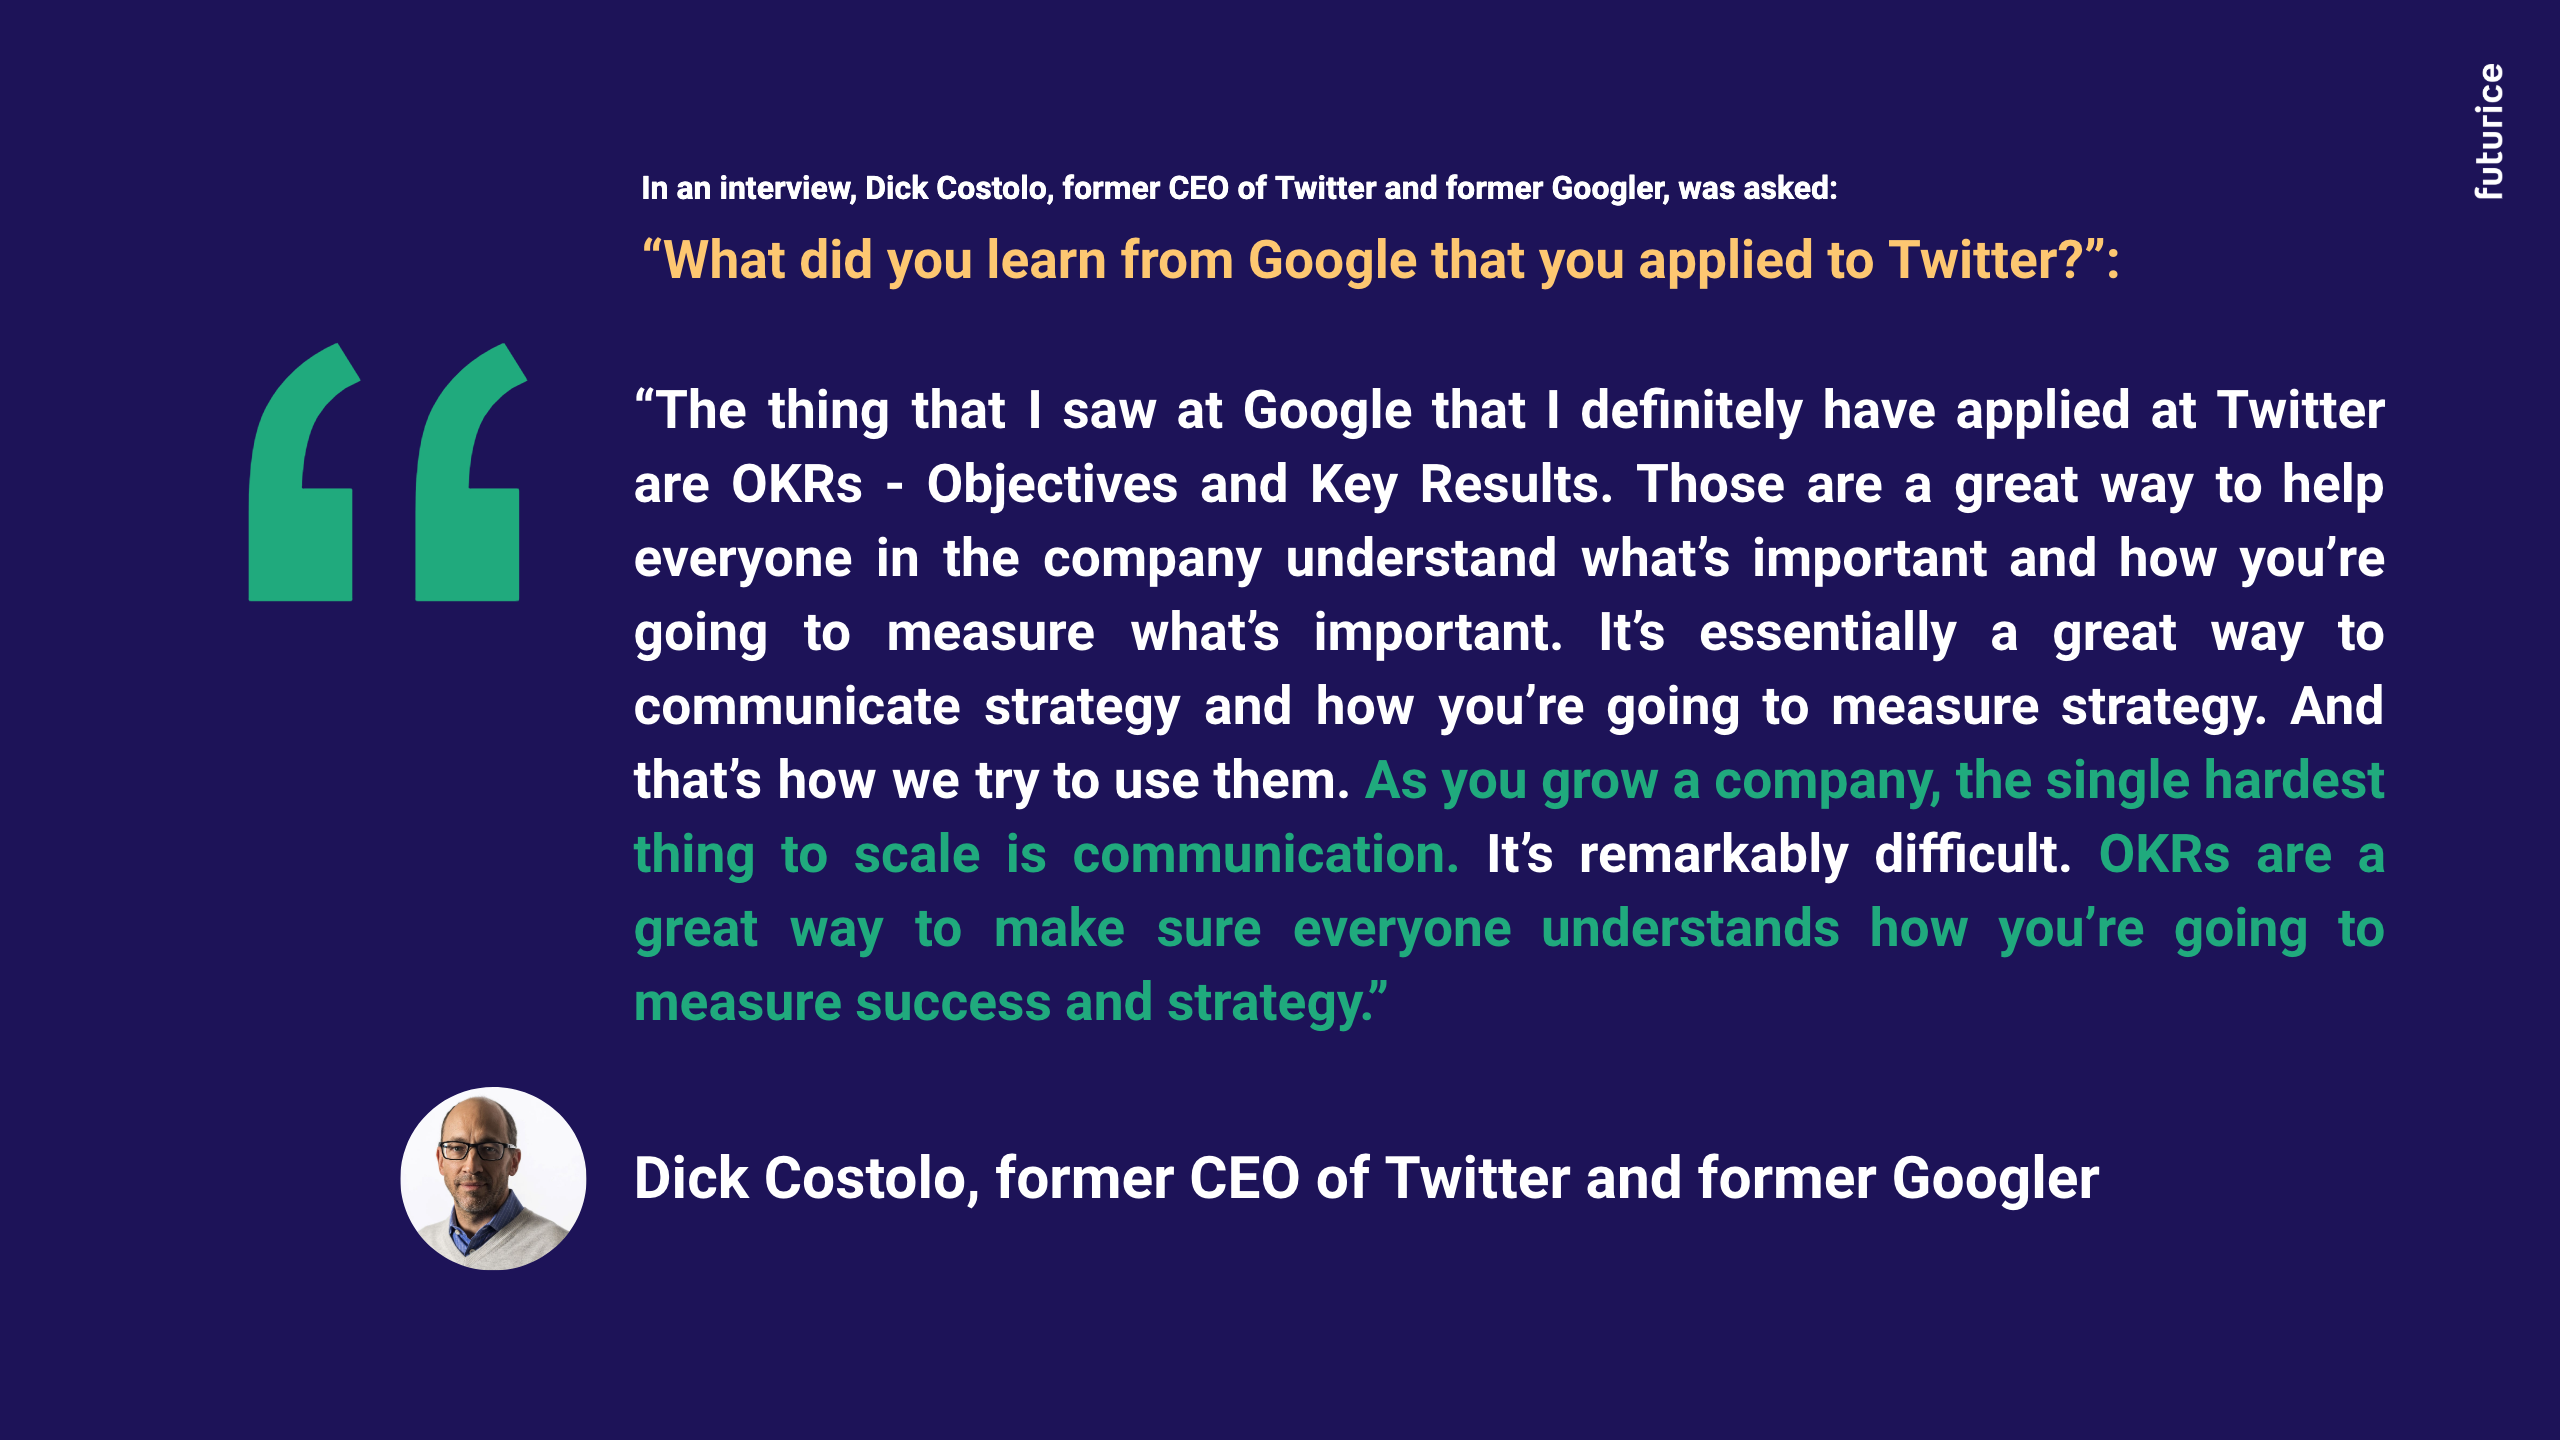 Quote from Dick Costolo (former CEO of Twitter and former Googler)